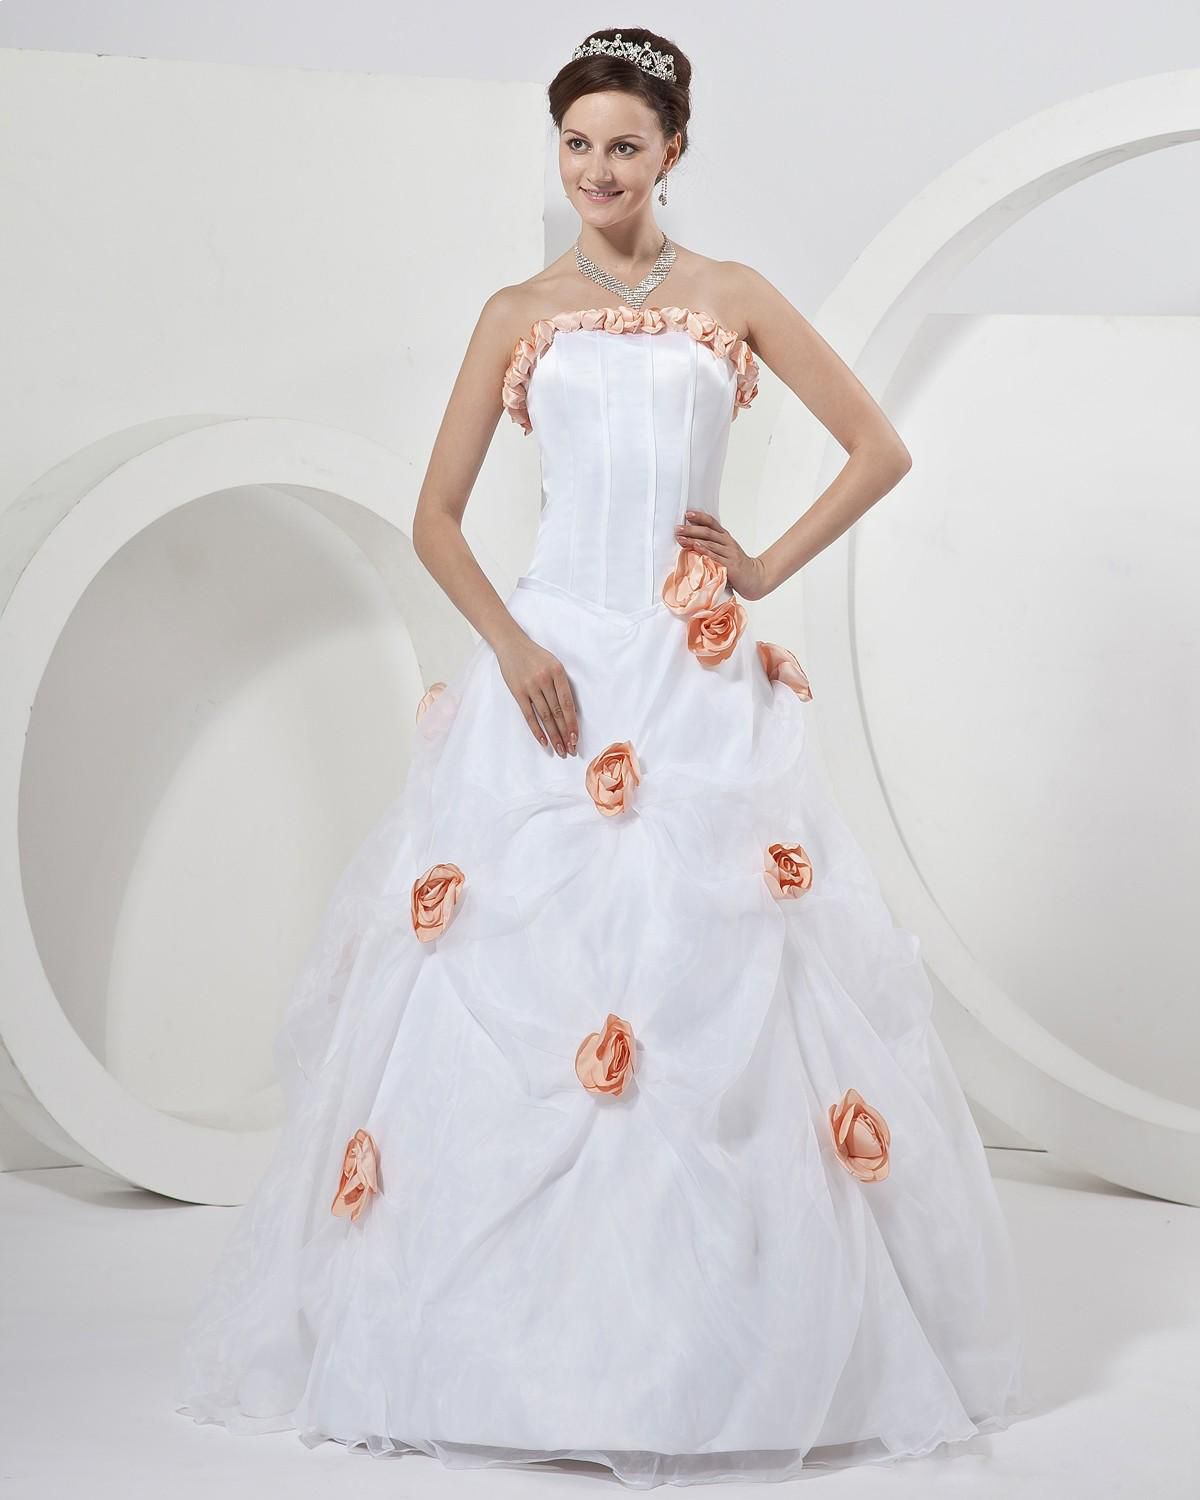 Different color wedding dresses  Flowers Strapless Wedding Dress Bridal Gown Read More